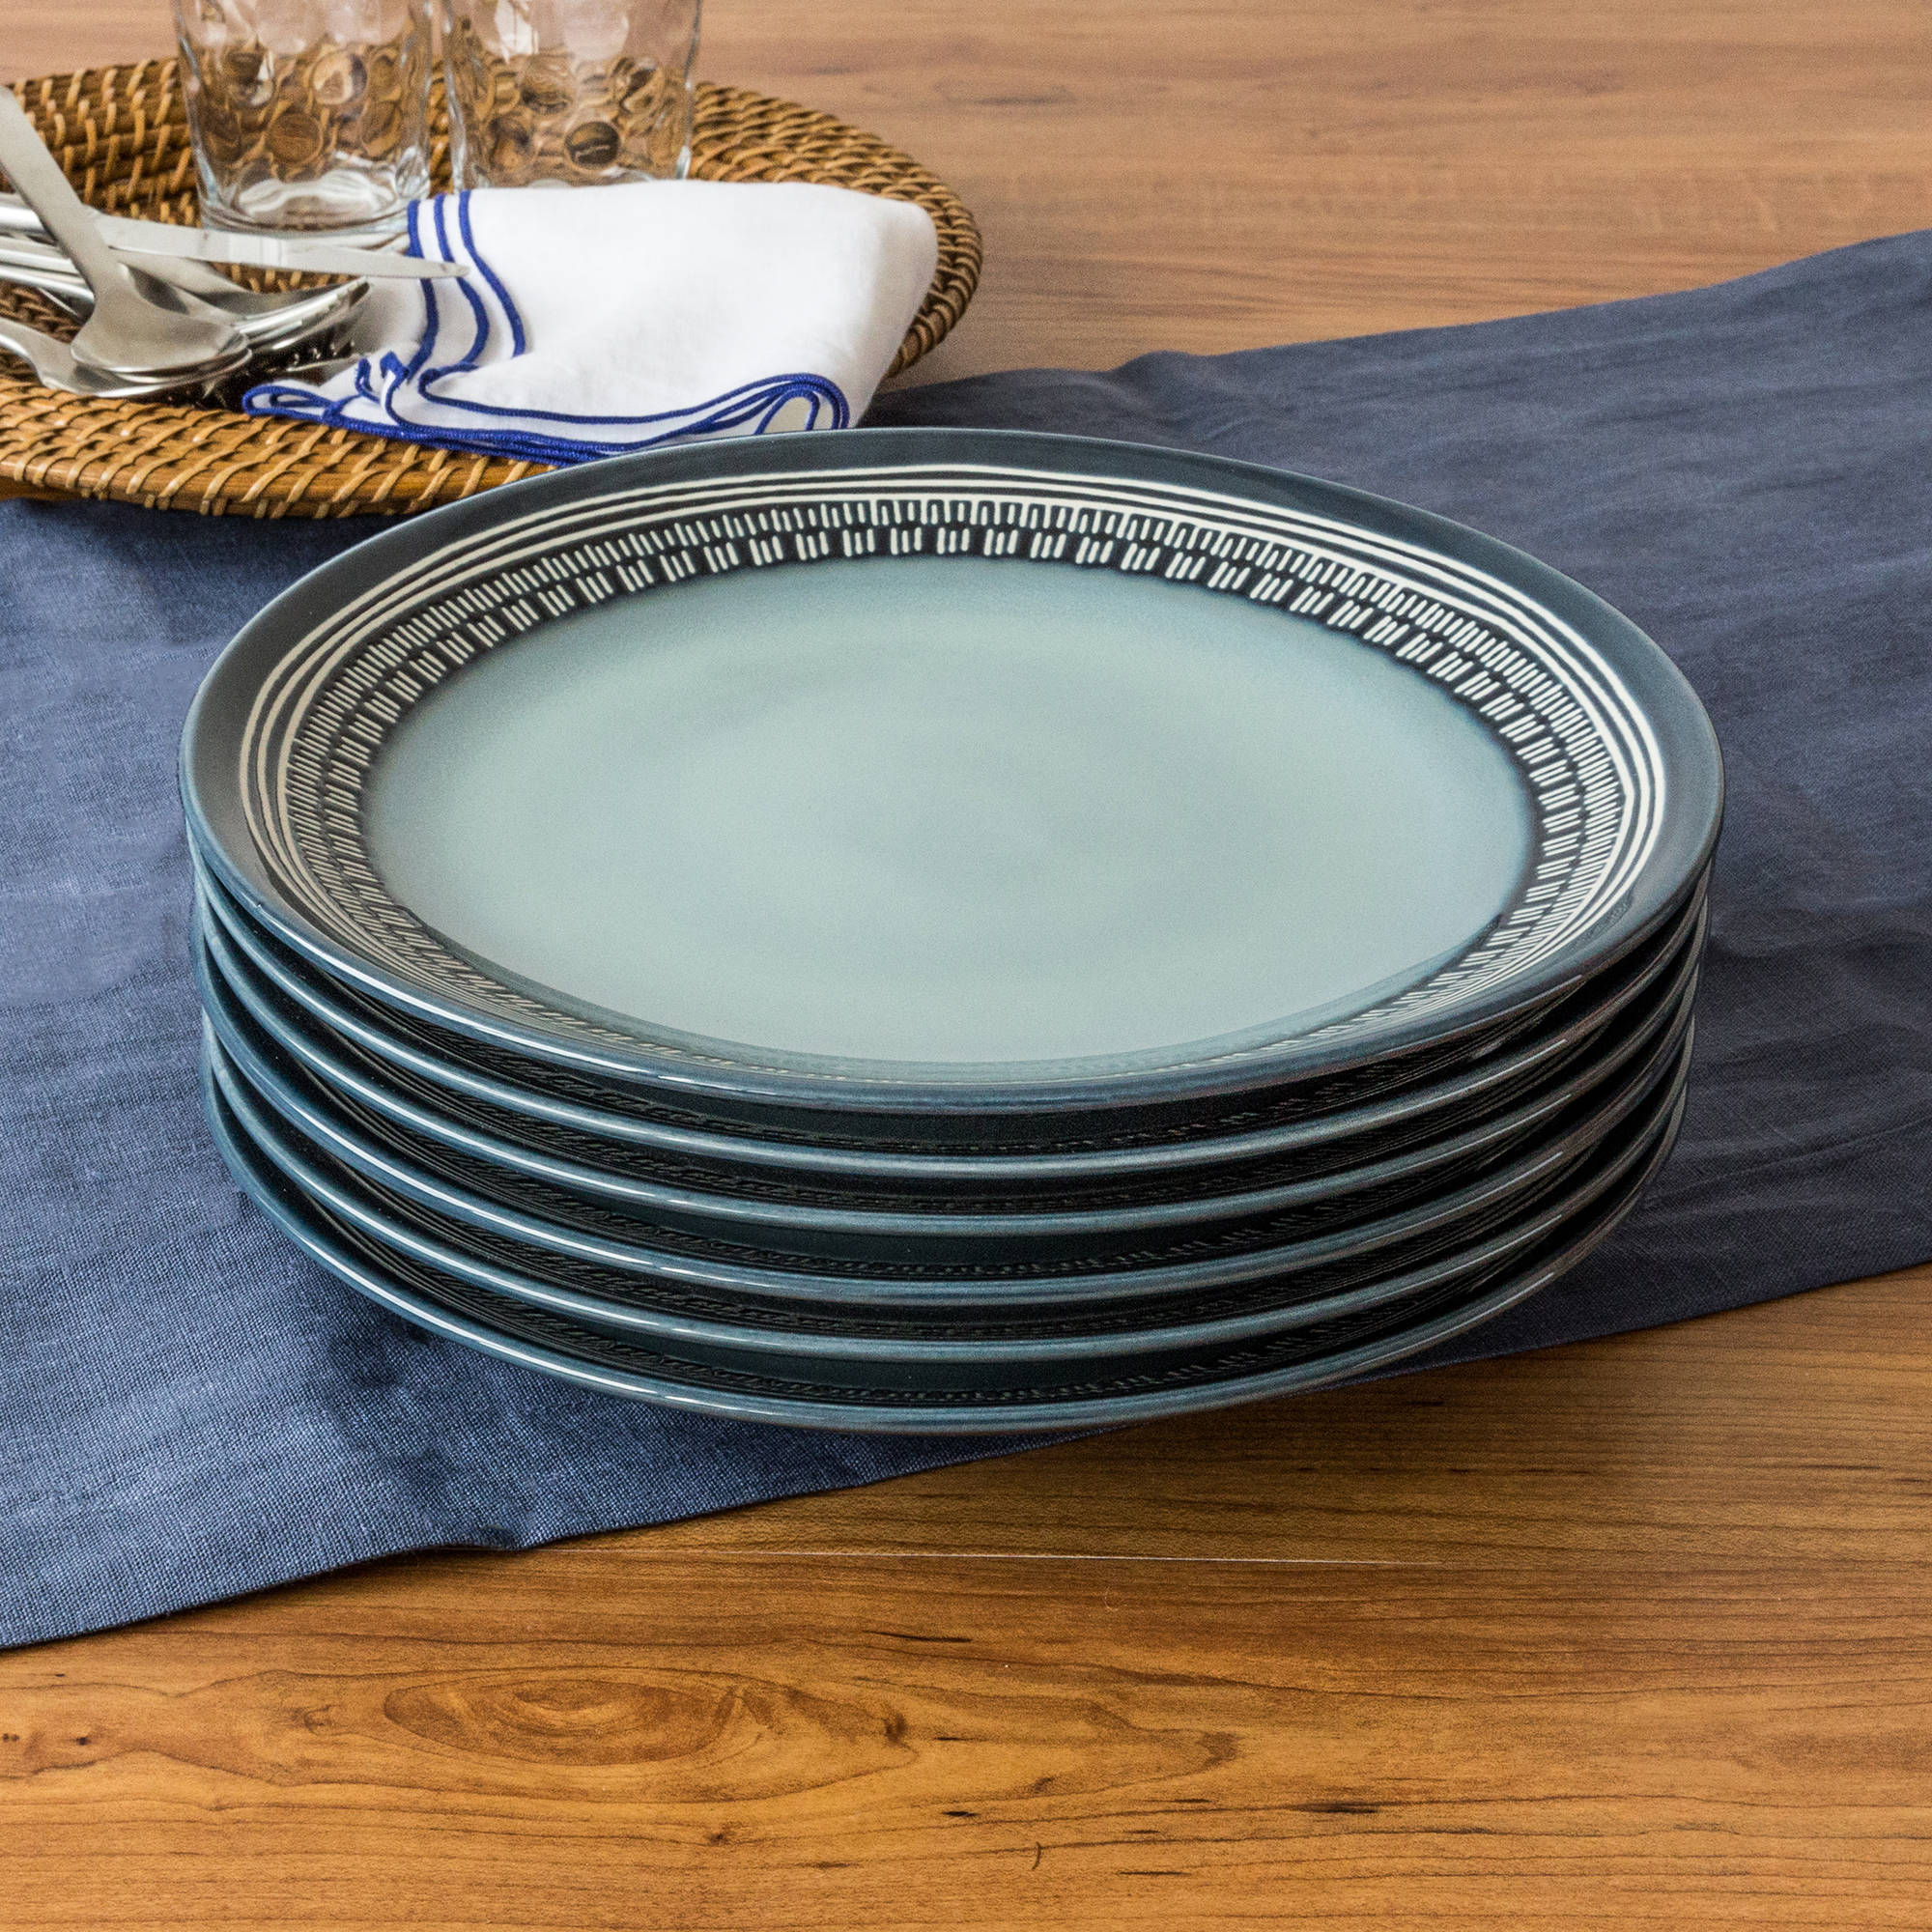 Better Homes and Gardens Teal Medallion 16 Piece Dinnerware Set Dark Teal - Walmart.com & Better Homes and Gardens Teal Medallion 16 Piece Dinnerware Set ...